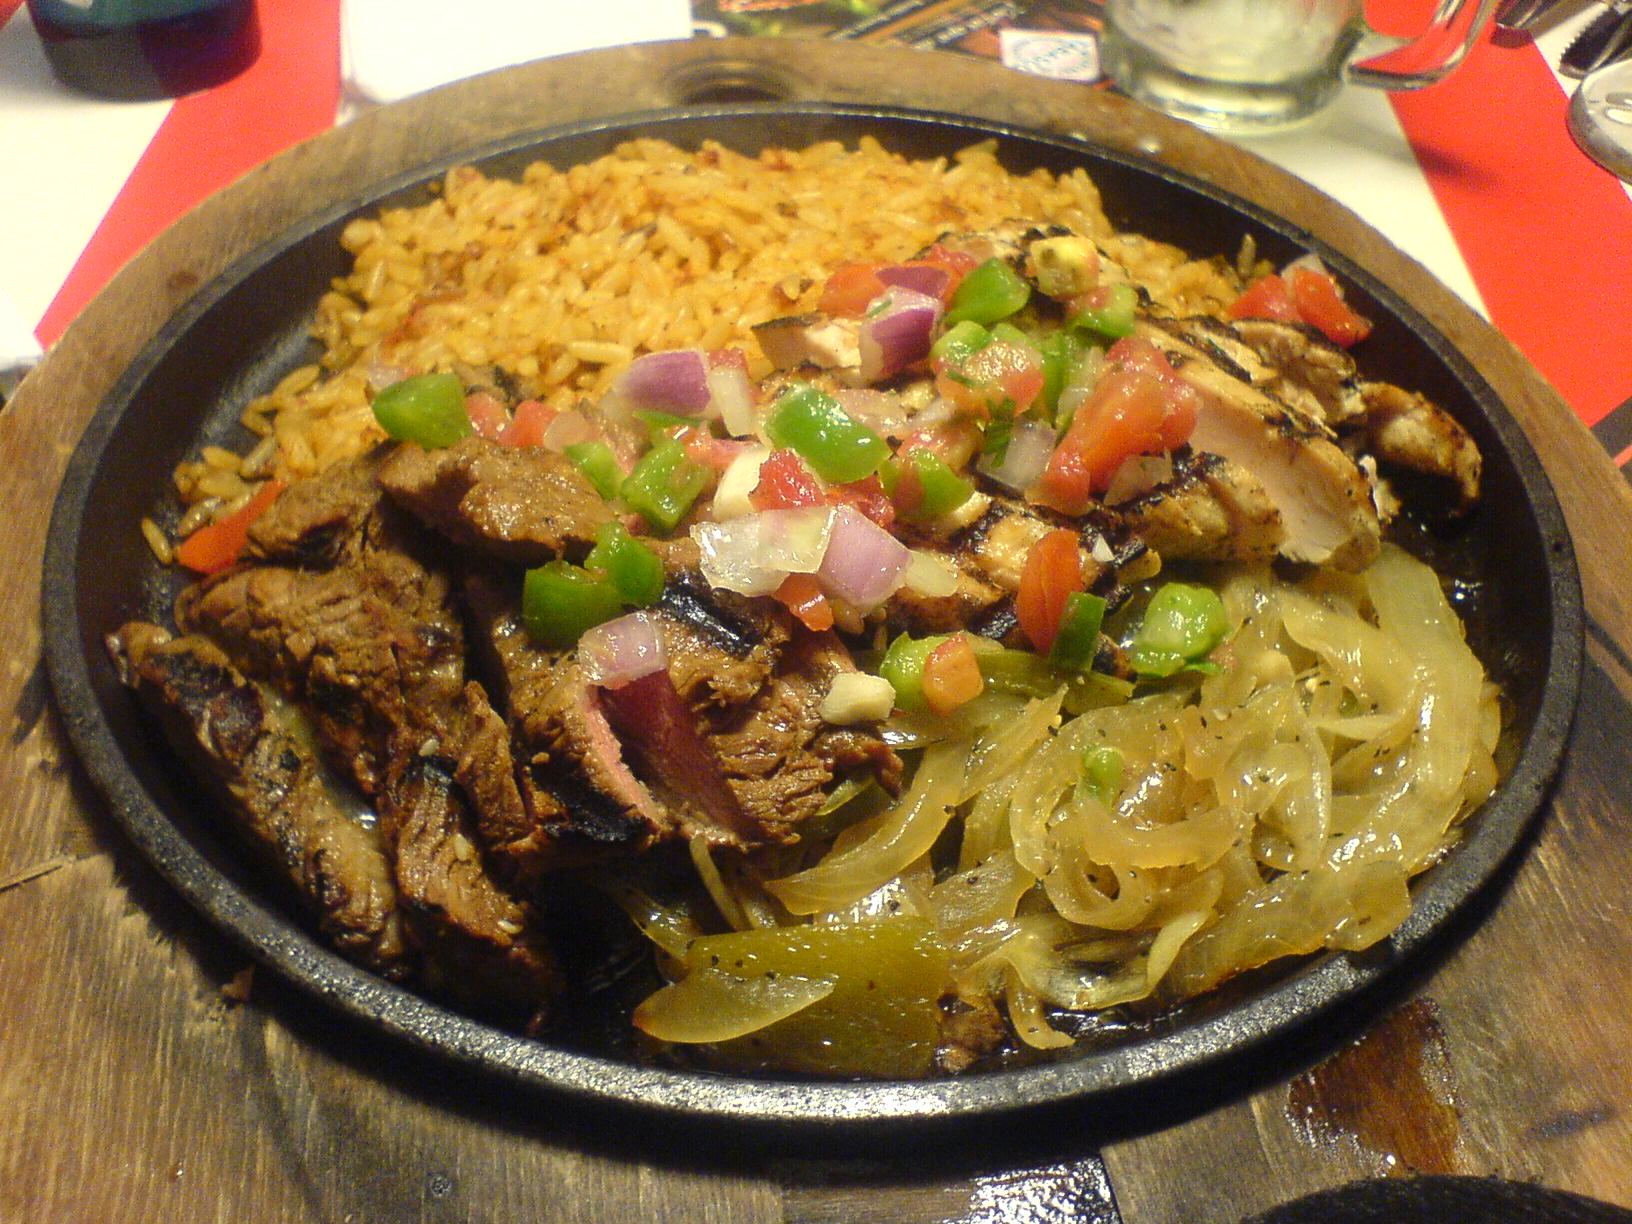 http://upload.wikimedia.org/wikipedia/commons/f/f9/Flickr_elisart_324248450--Beef_and_chicken_fajitas.jpg